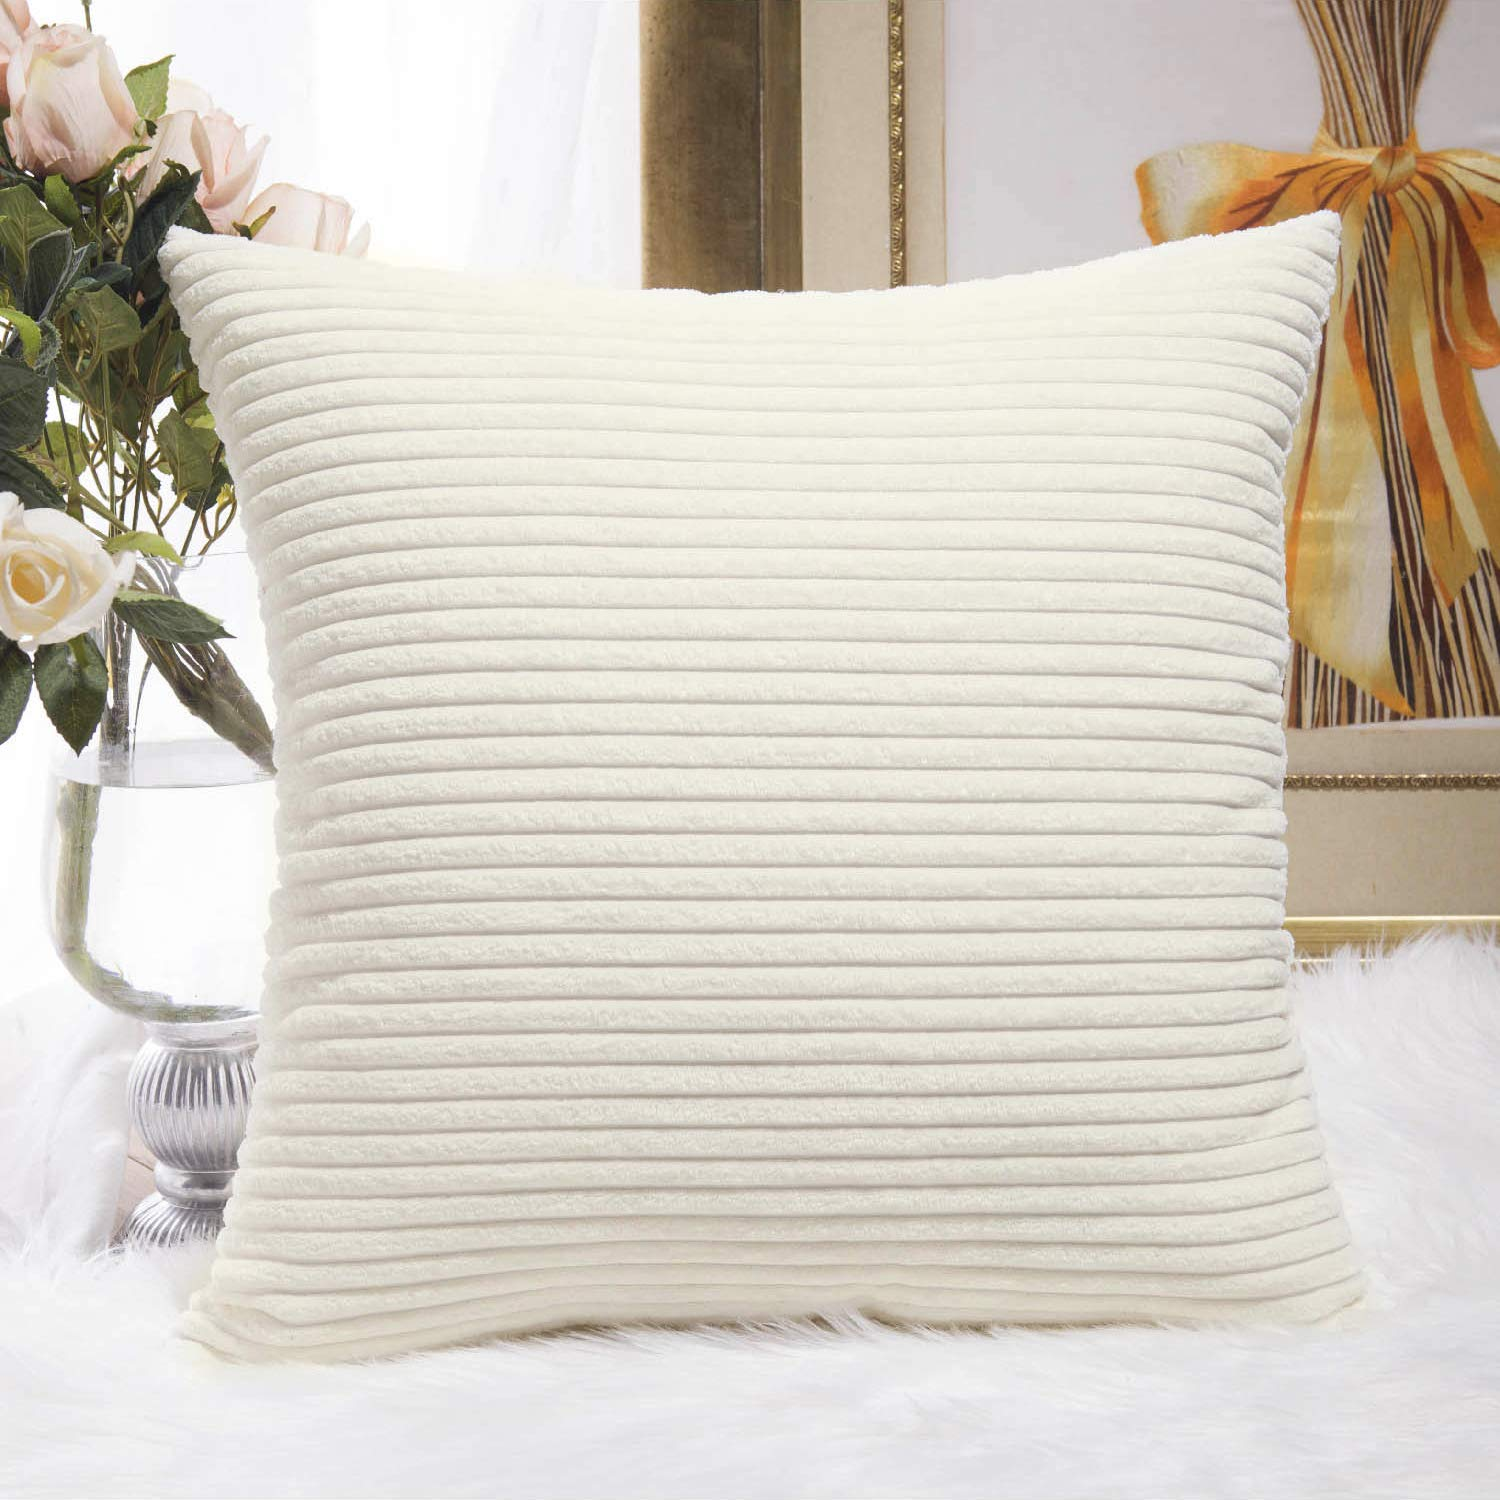 HOME BRILLIANT Super Soft Striped Corduroy Velvet Decorative Euro Throw Pillow Sham Cushion Cover for Baby, 26x26 inch(66cm), Creamy White